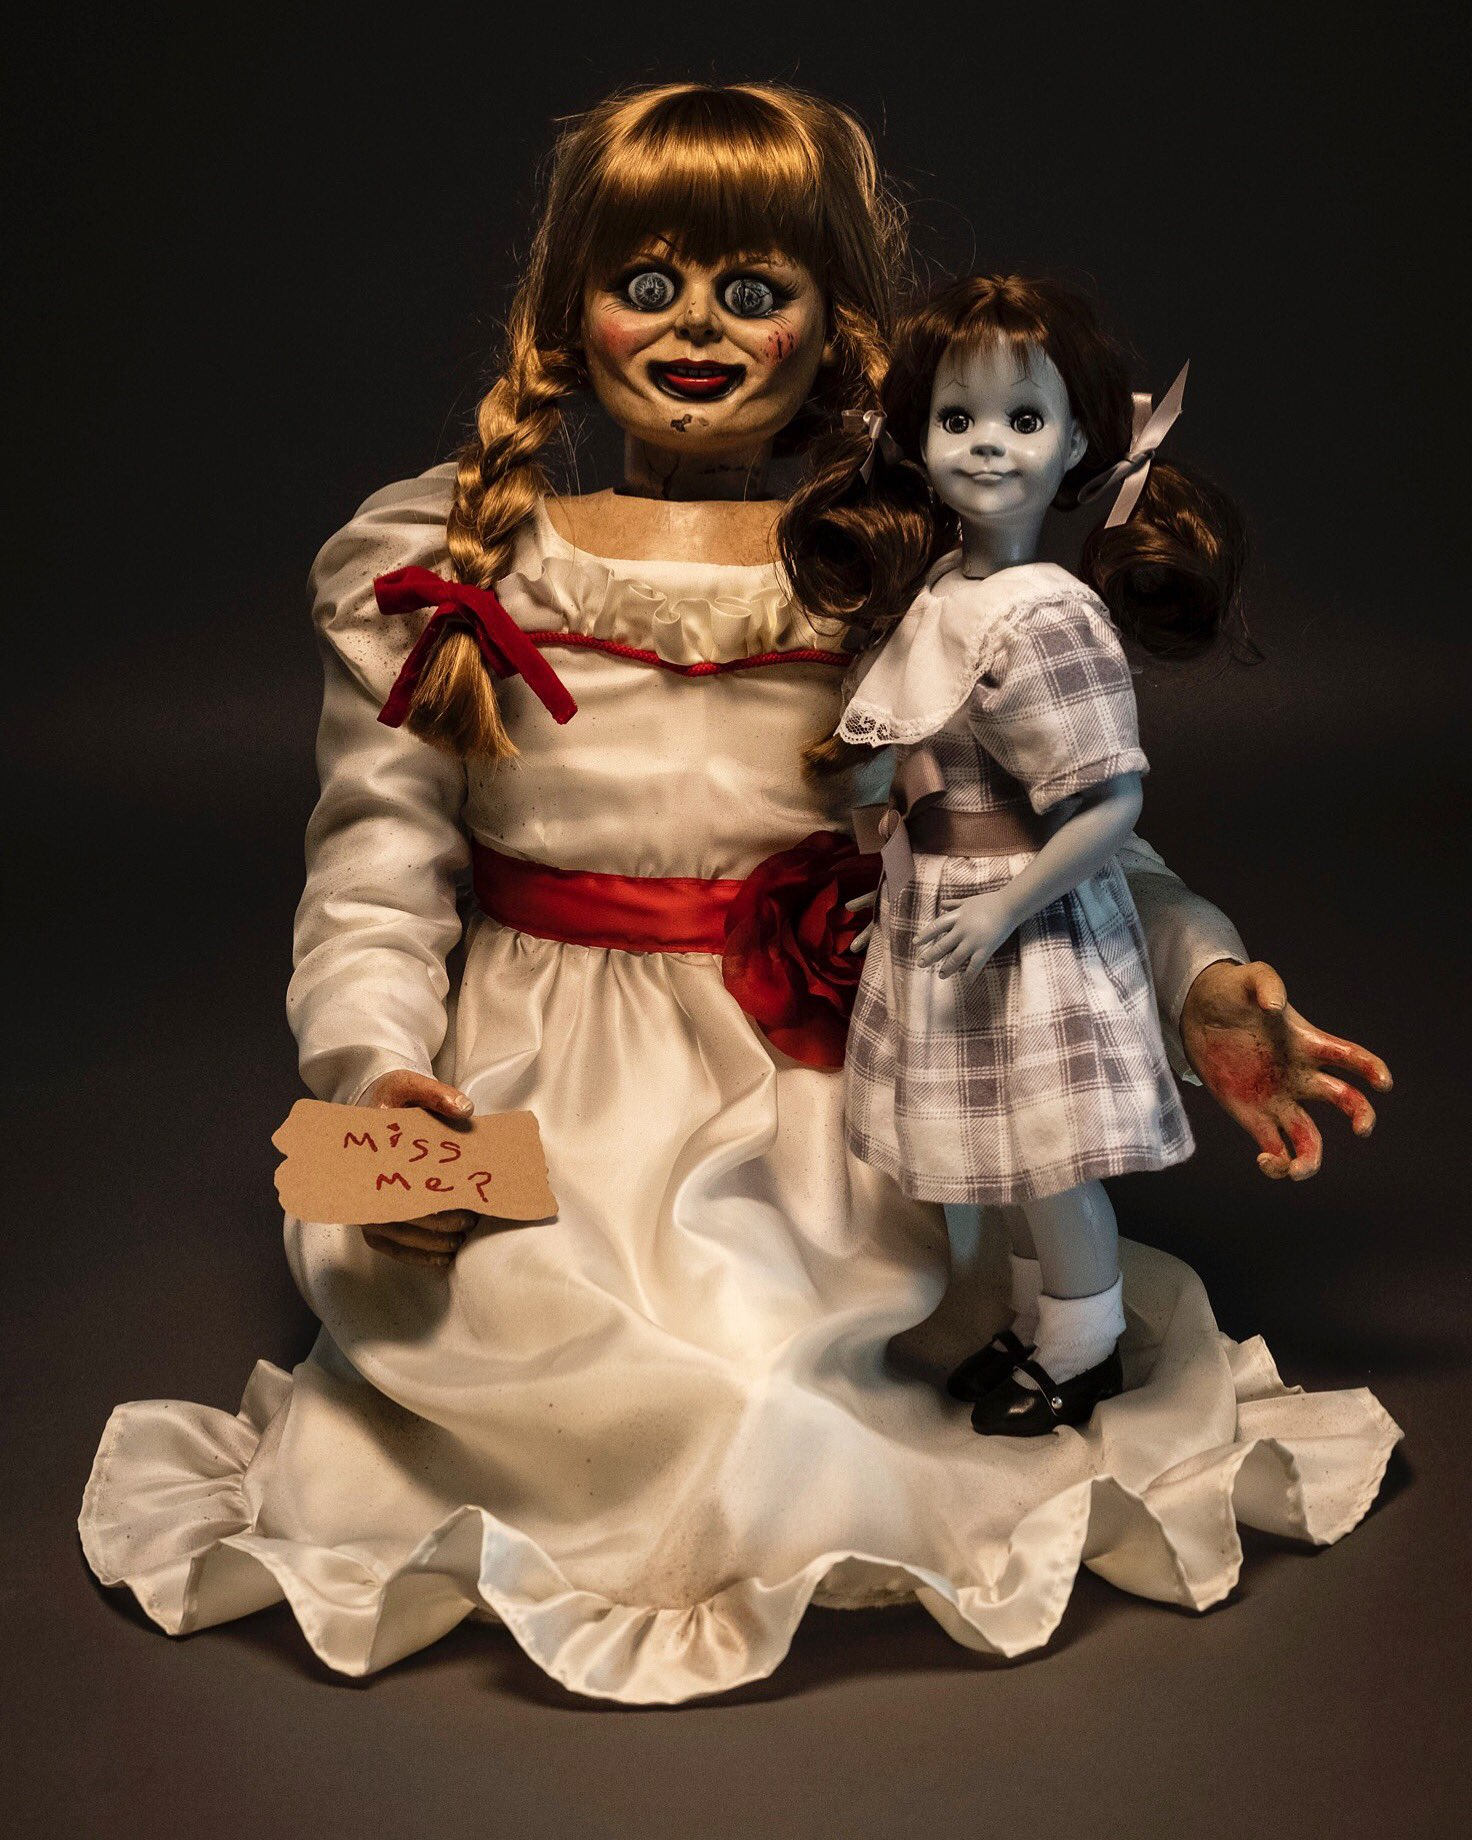 Trickortreat Studios Reveals New Annabelle Doll For Annabelle 3 Scarymovies